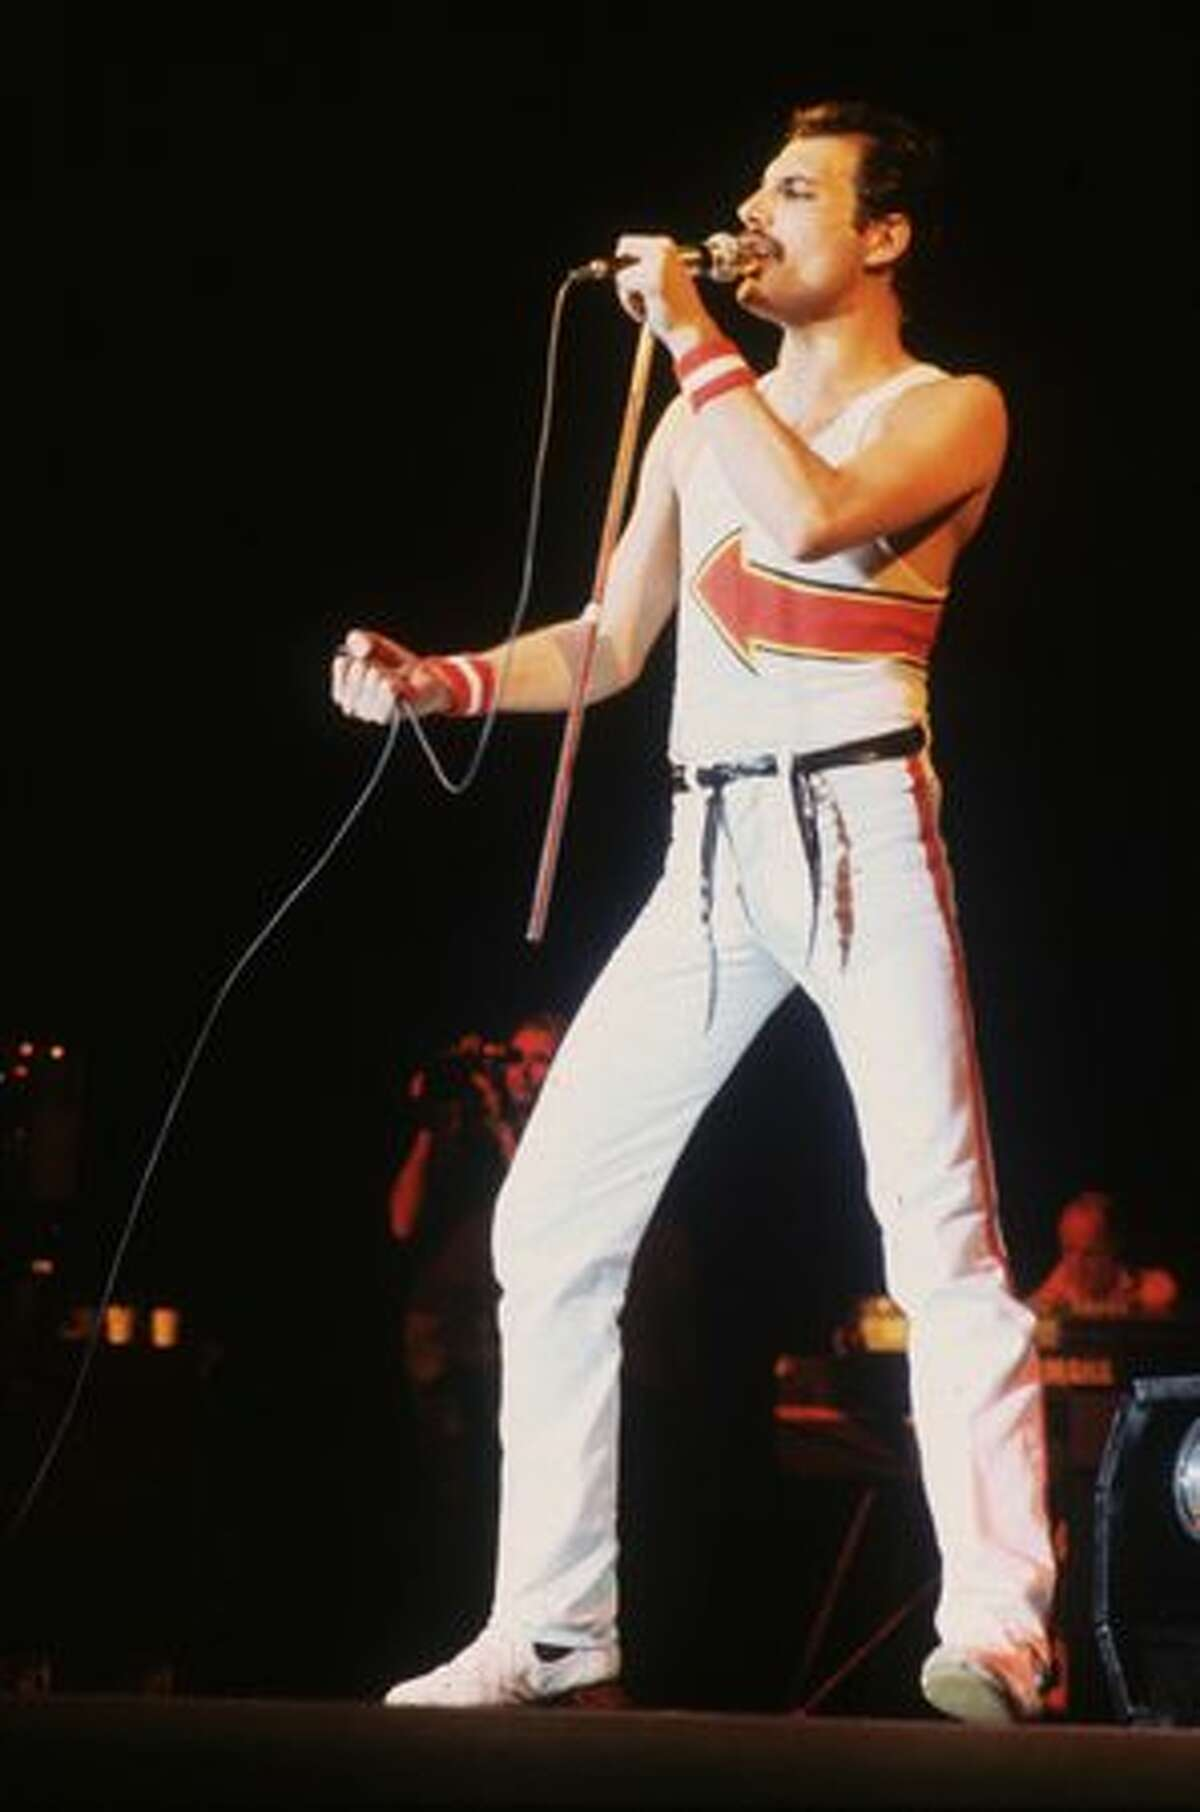 Here are our picks for the 50 best rock singers of all time (in no particular order). Agree or disagree? Share your comments. Freddie Mercury (1946-1991): A British musician who is best known as the lead vocalist and songwriter of the rock band Queen. Hear a sample and shop at Amazon: Lover Of Life, Singer Of Songs: The Very Best Of Freddie Mercury Solo (2CD) (Photo by Hulton Archive/Getty Images)